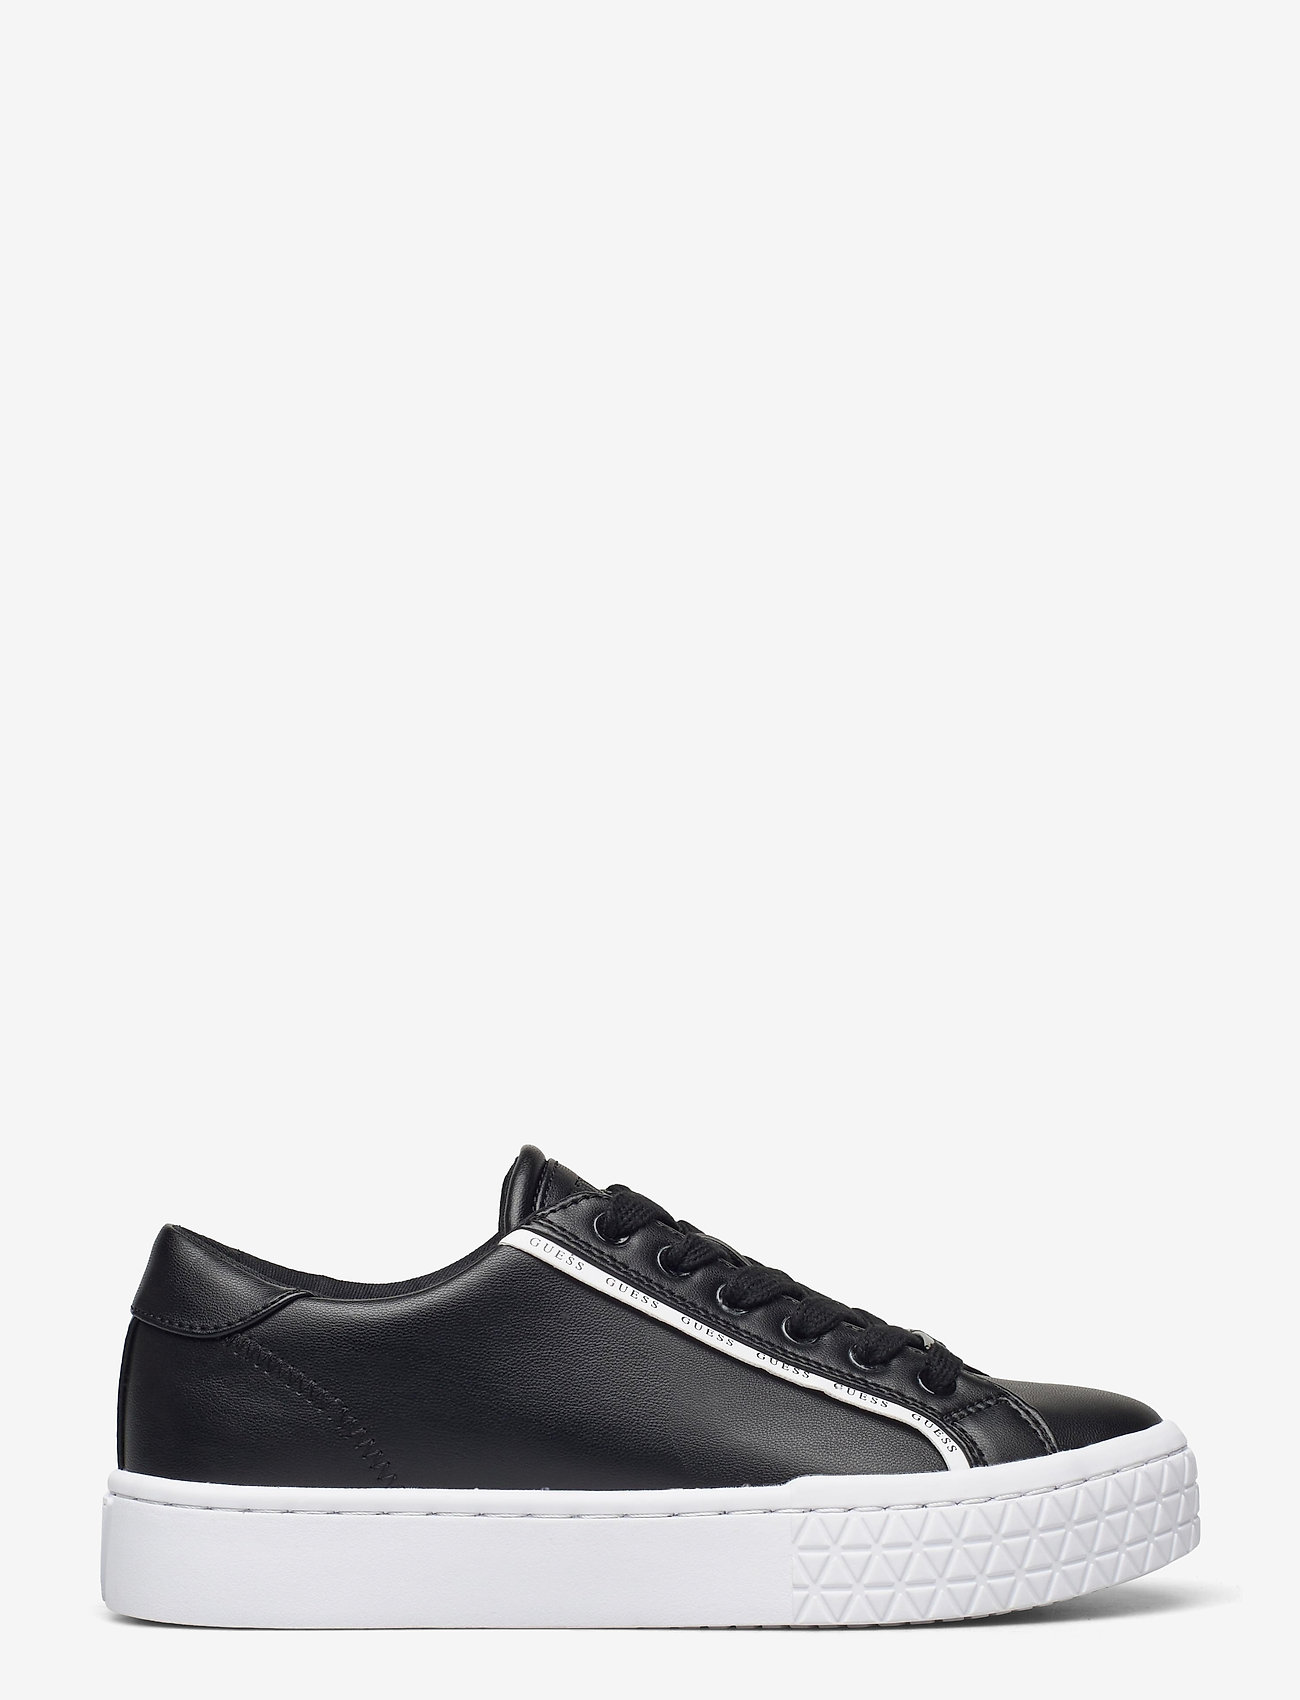 GUESS - PARDIE/ACTIVE LADY/LEATHER LIK - låga sneakers - blkwh - 0